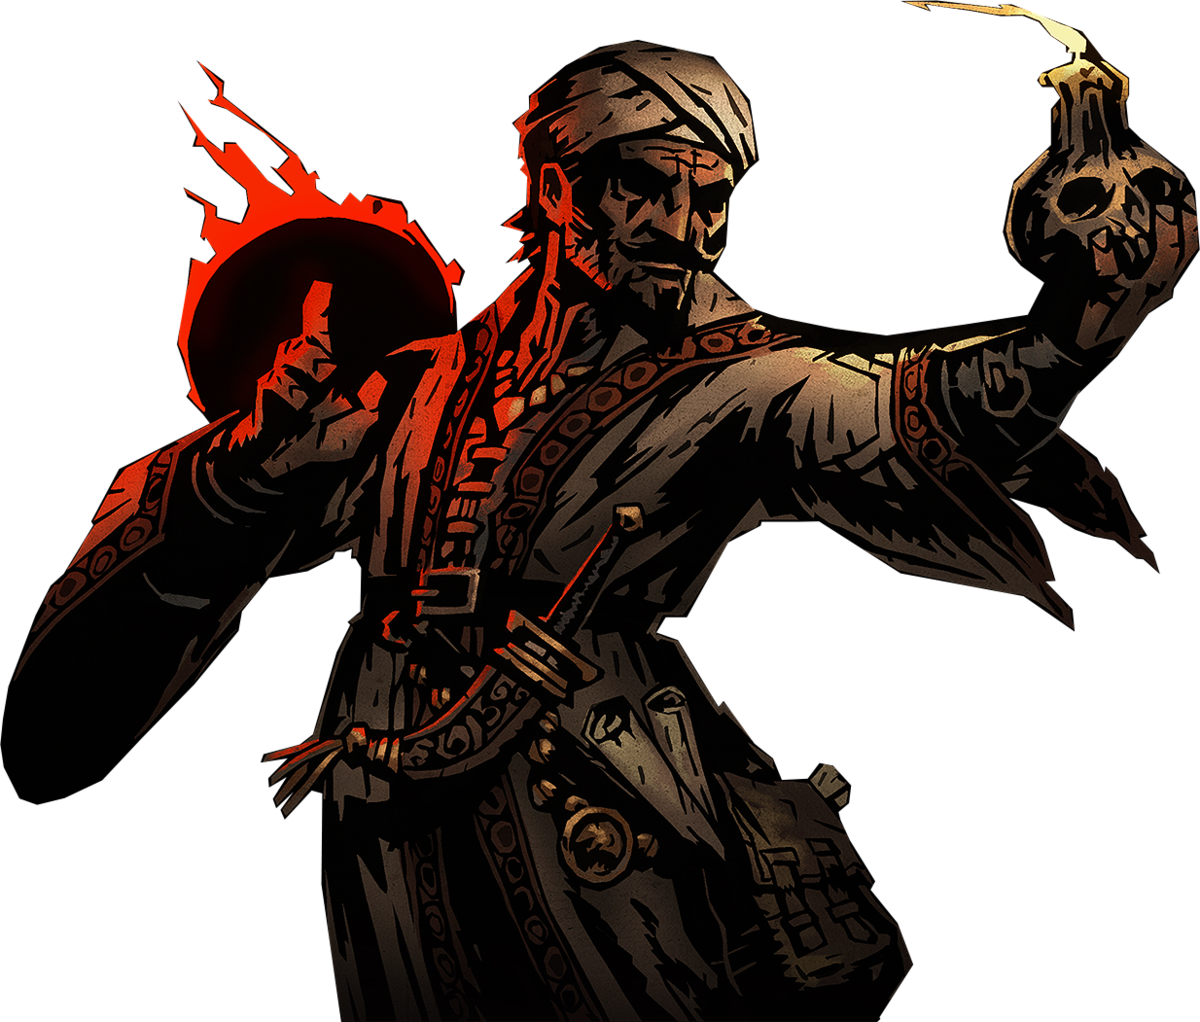 Occult drawing esoteric. Occultist official darkest dungeon